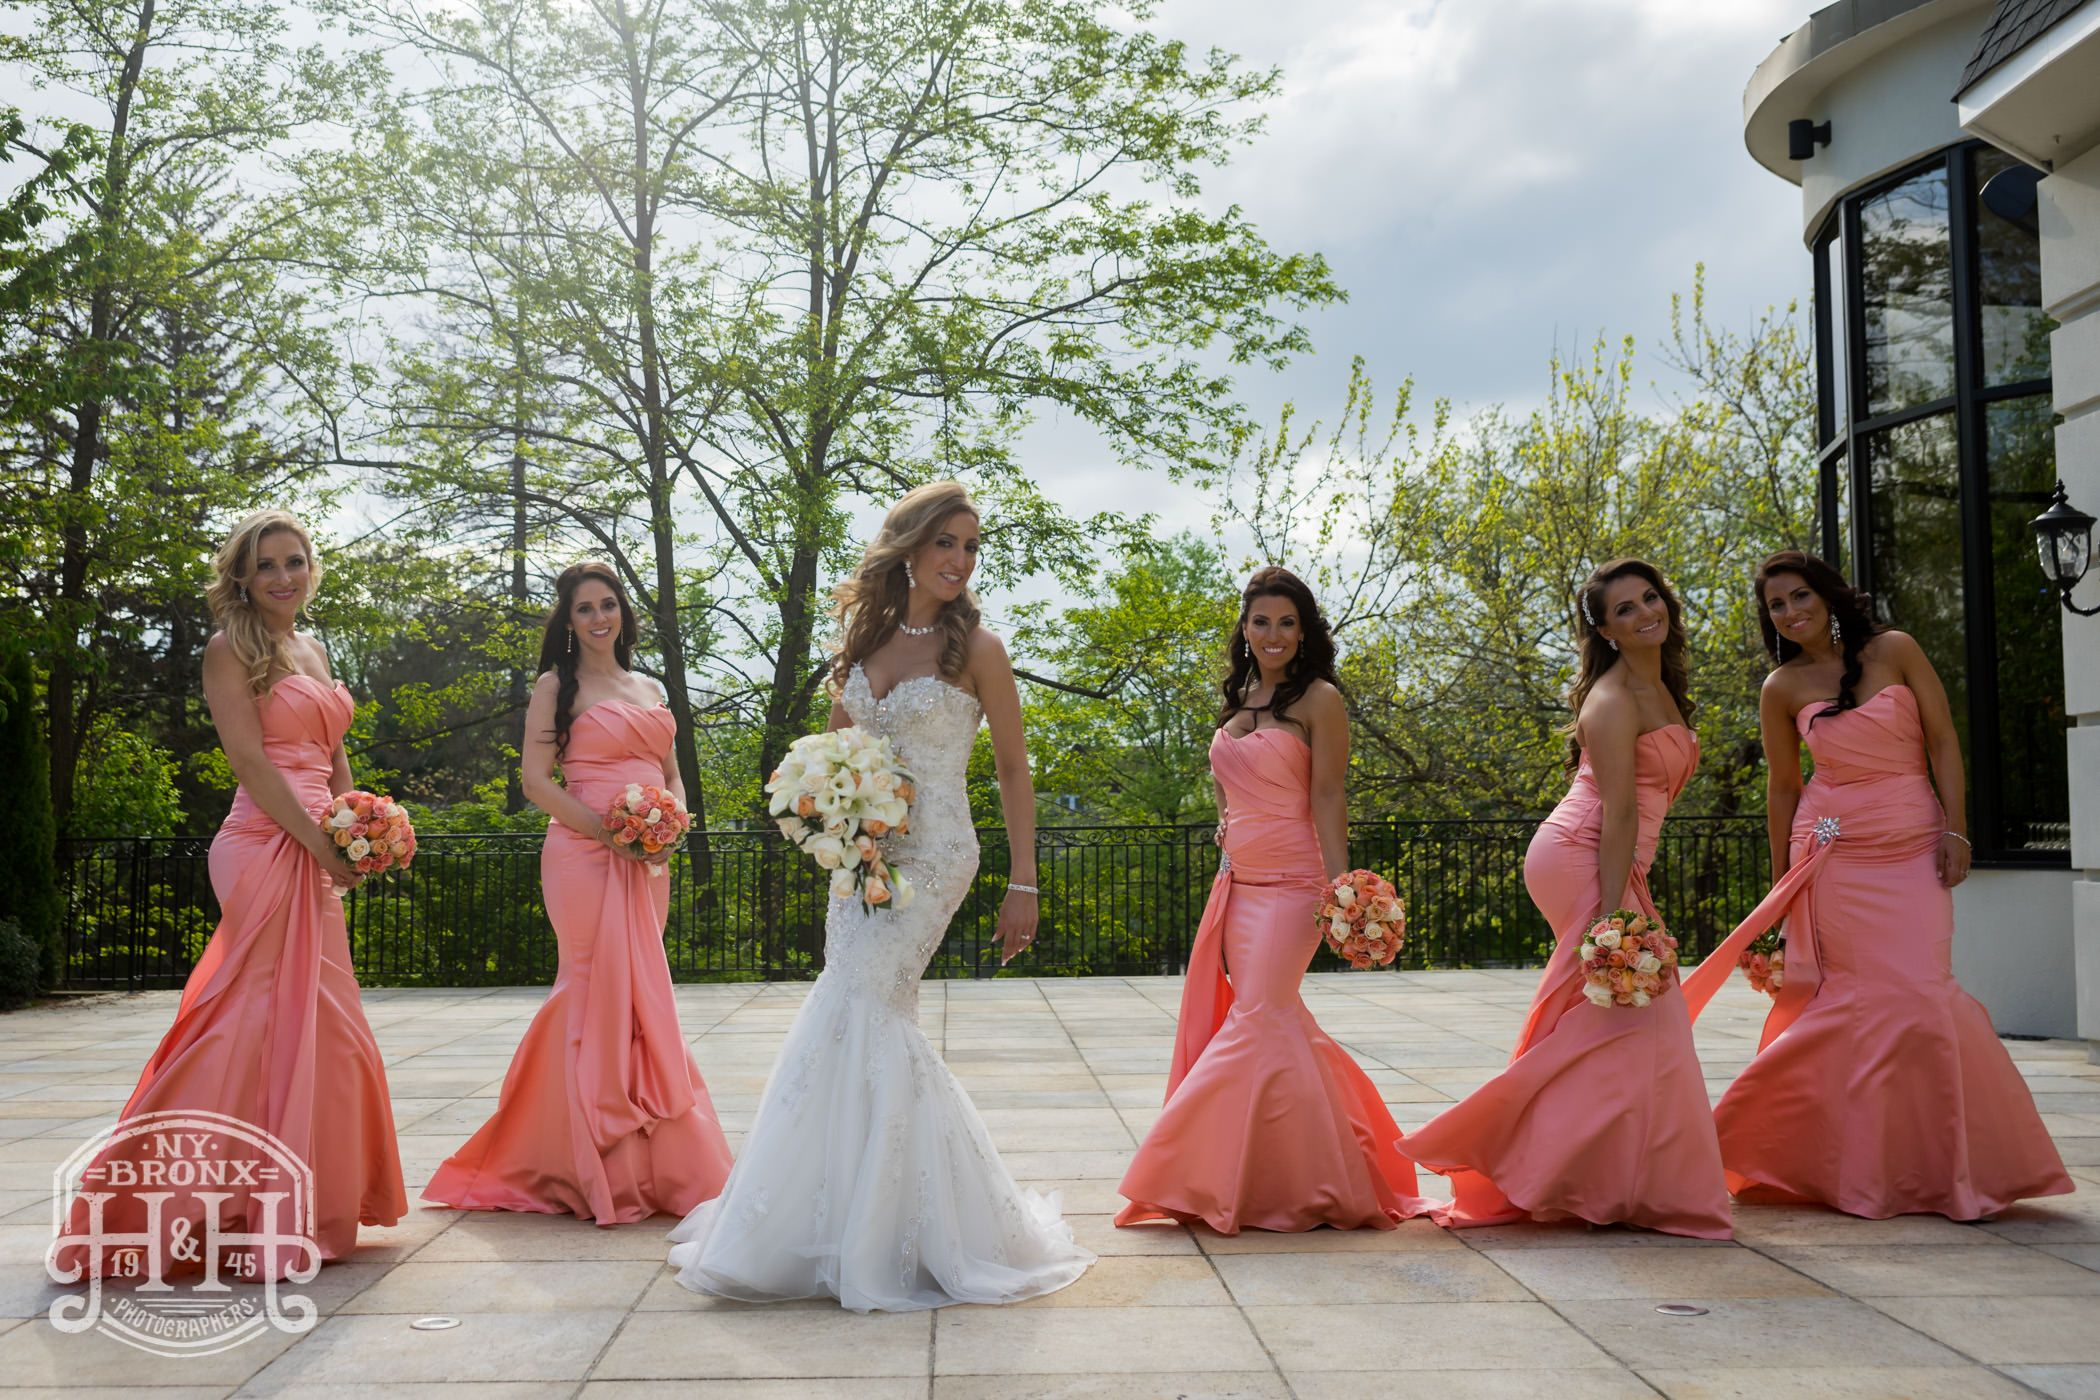 Alicias bridal gown and the bridesmaid dresses are fabulous at alicias bridal gown and the bridesmaid dresses are fabulous at mulinos at lake isle country club ombrellifo Choice Image